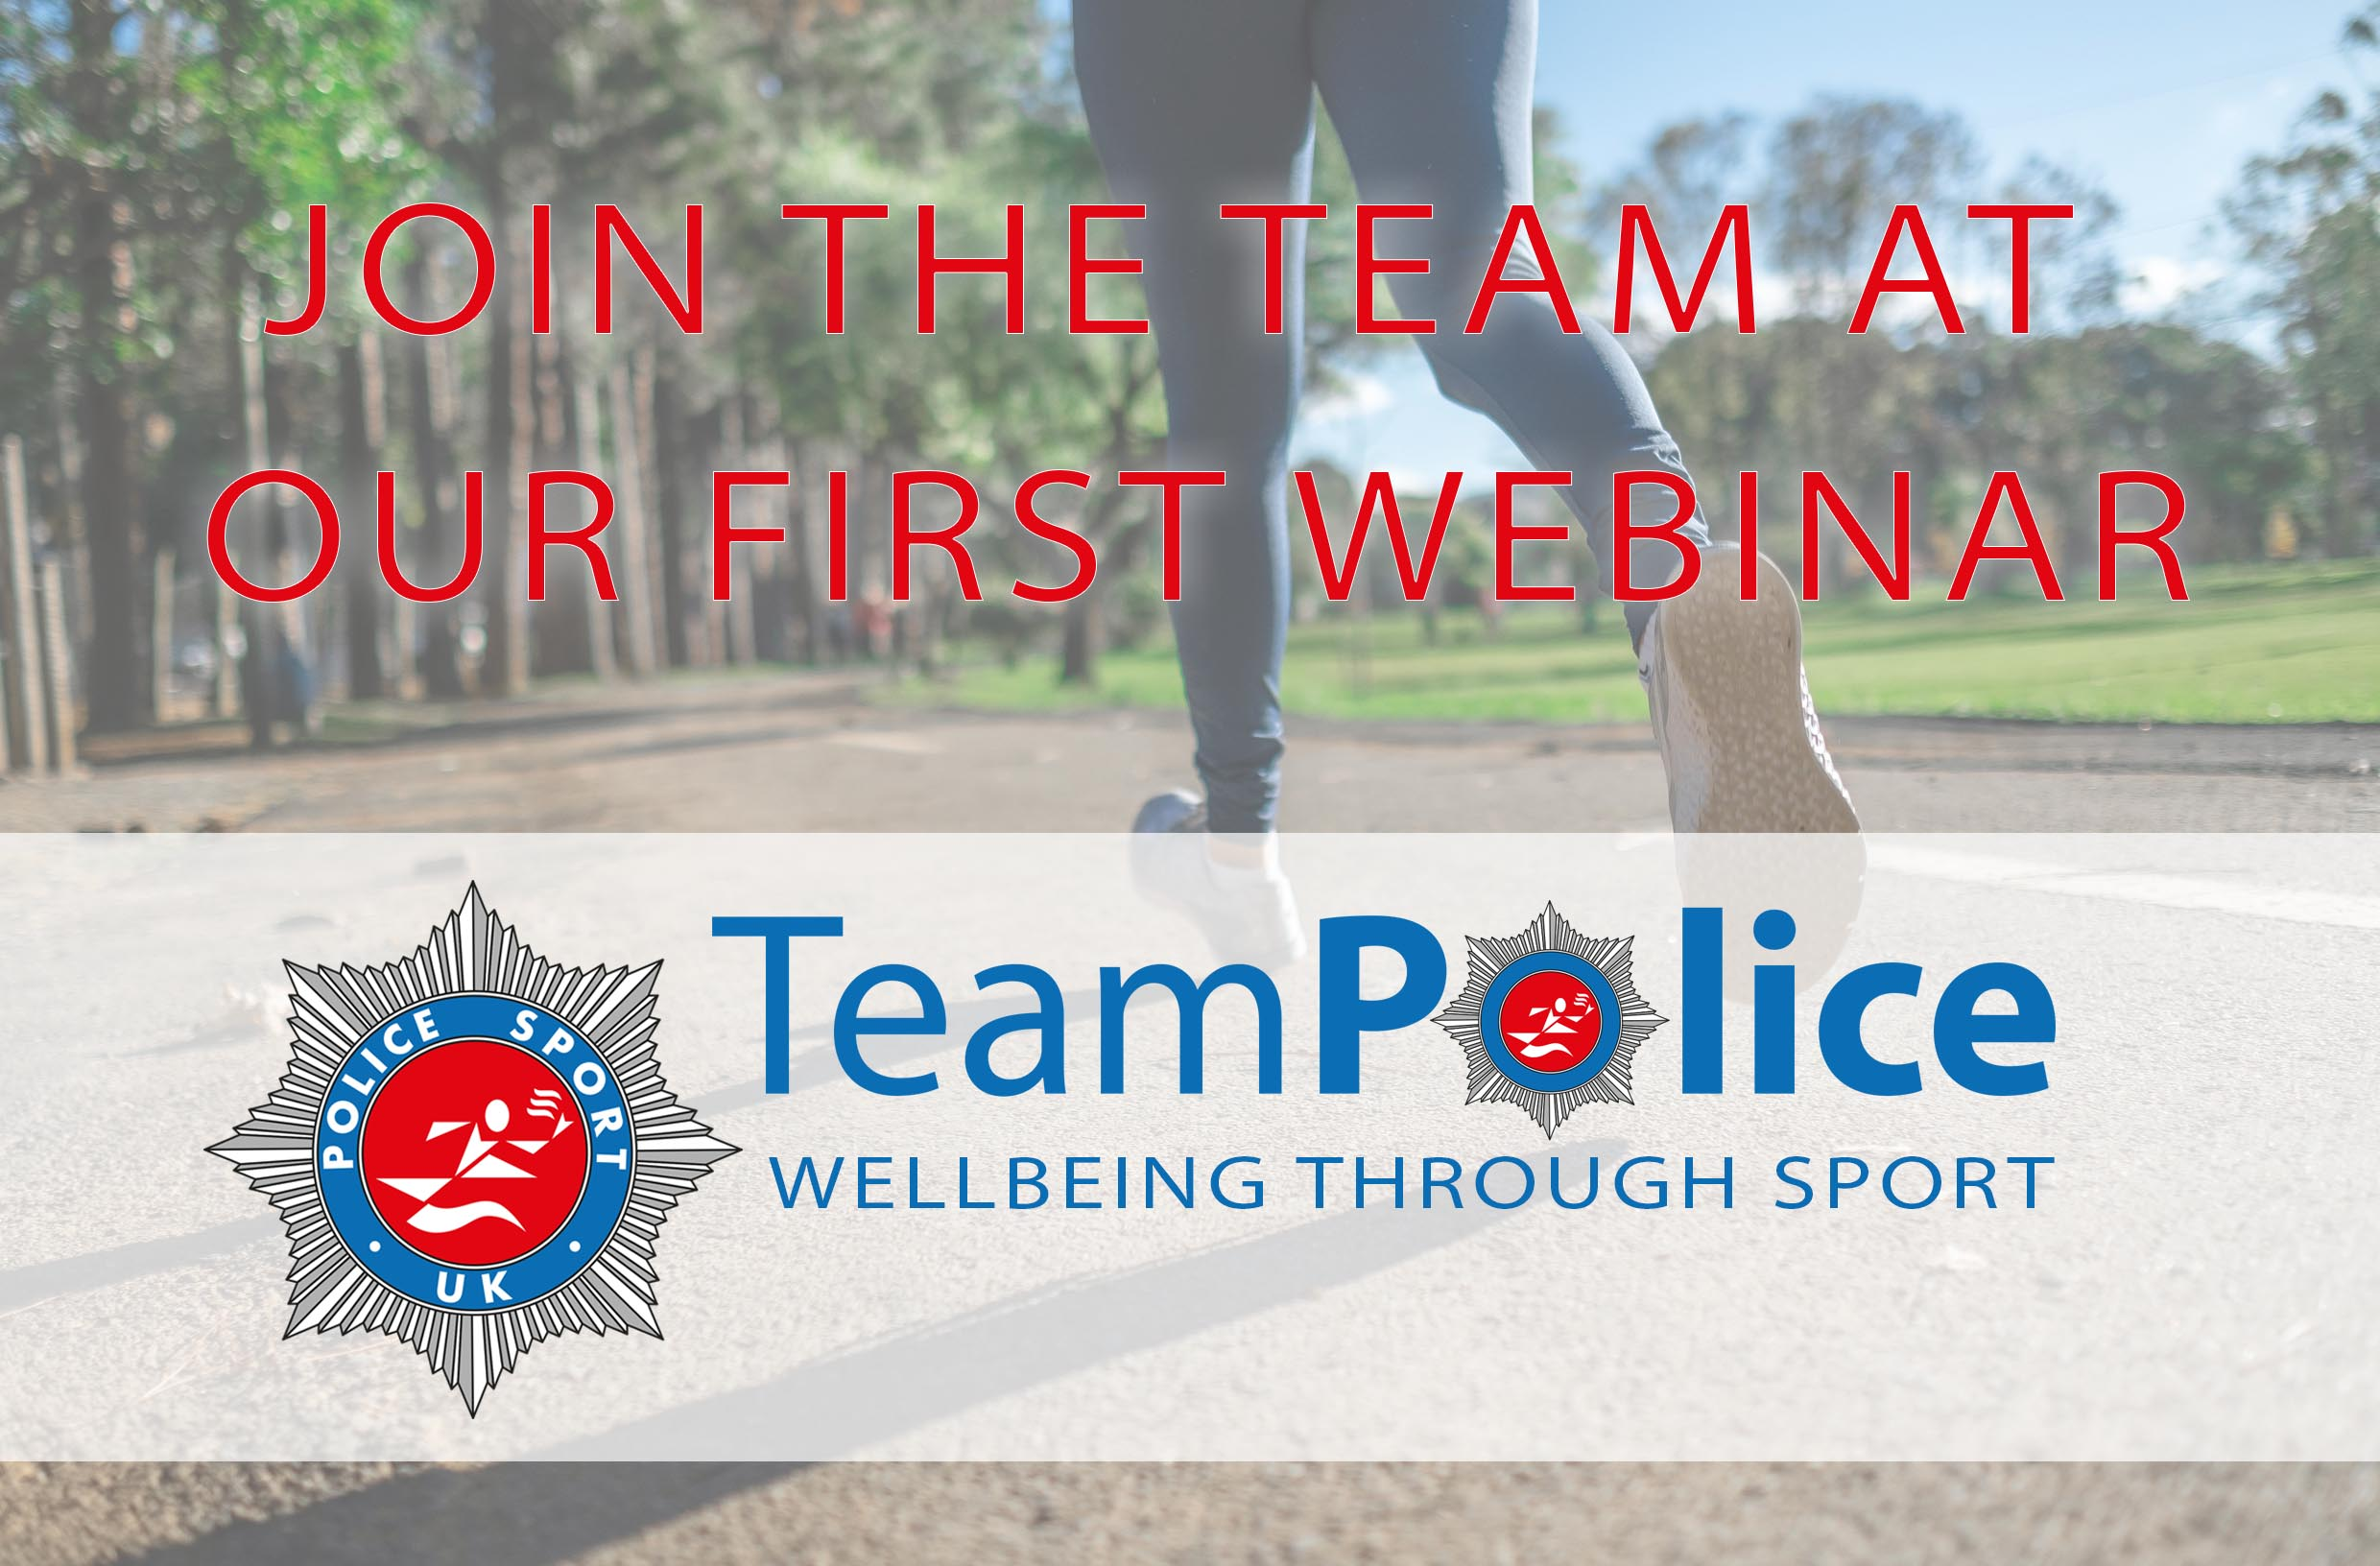 Police sport – online event